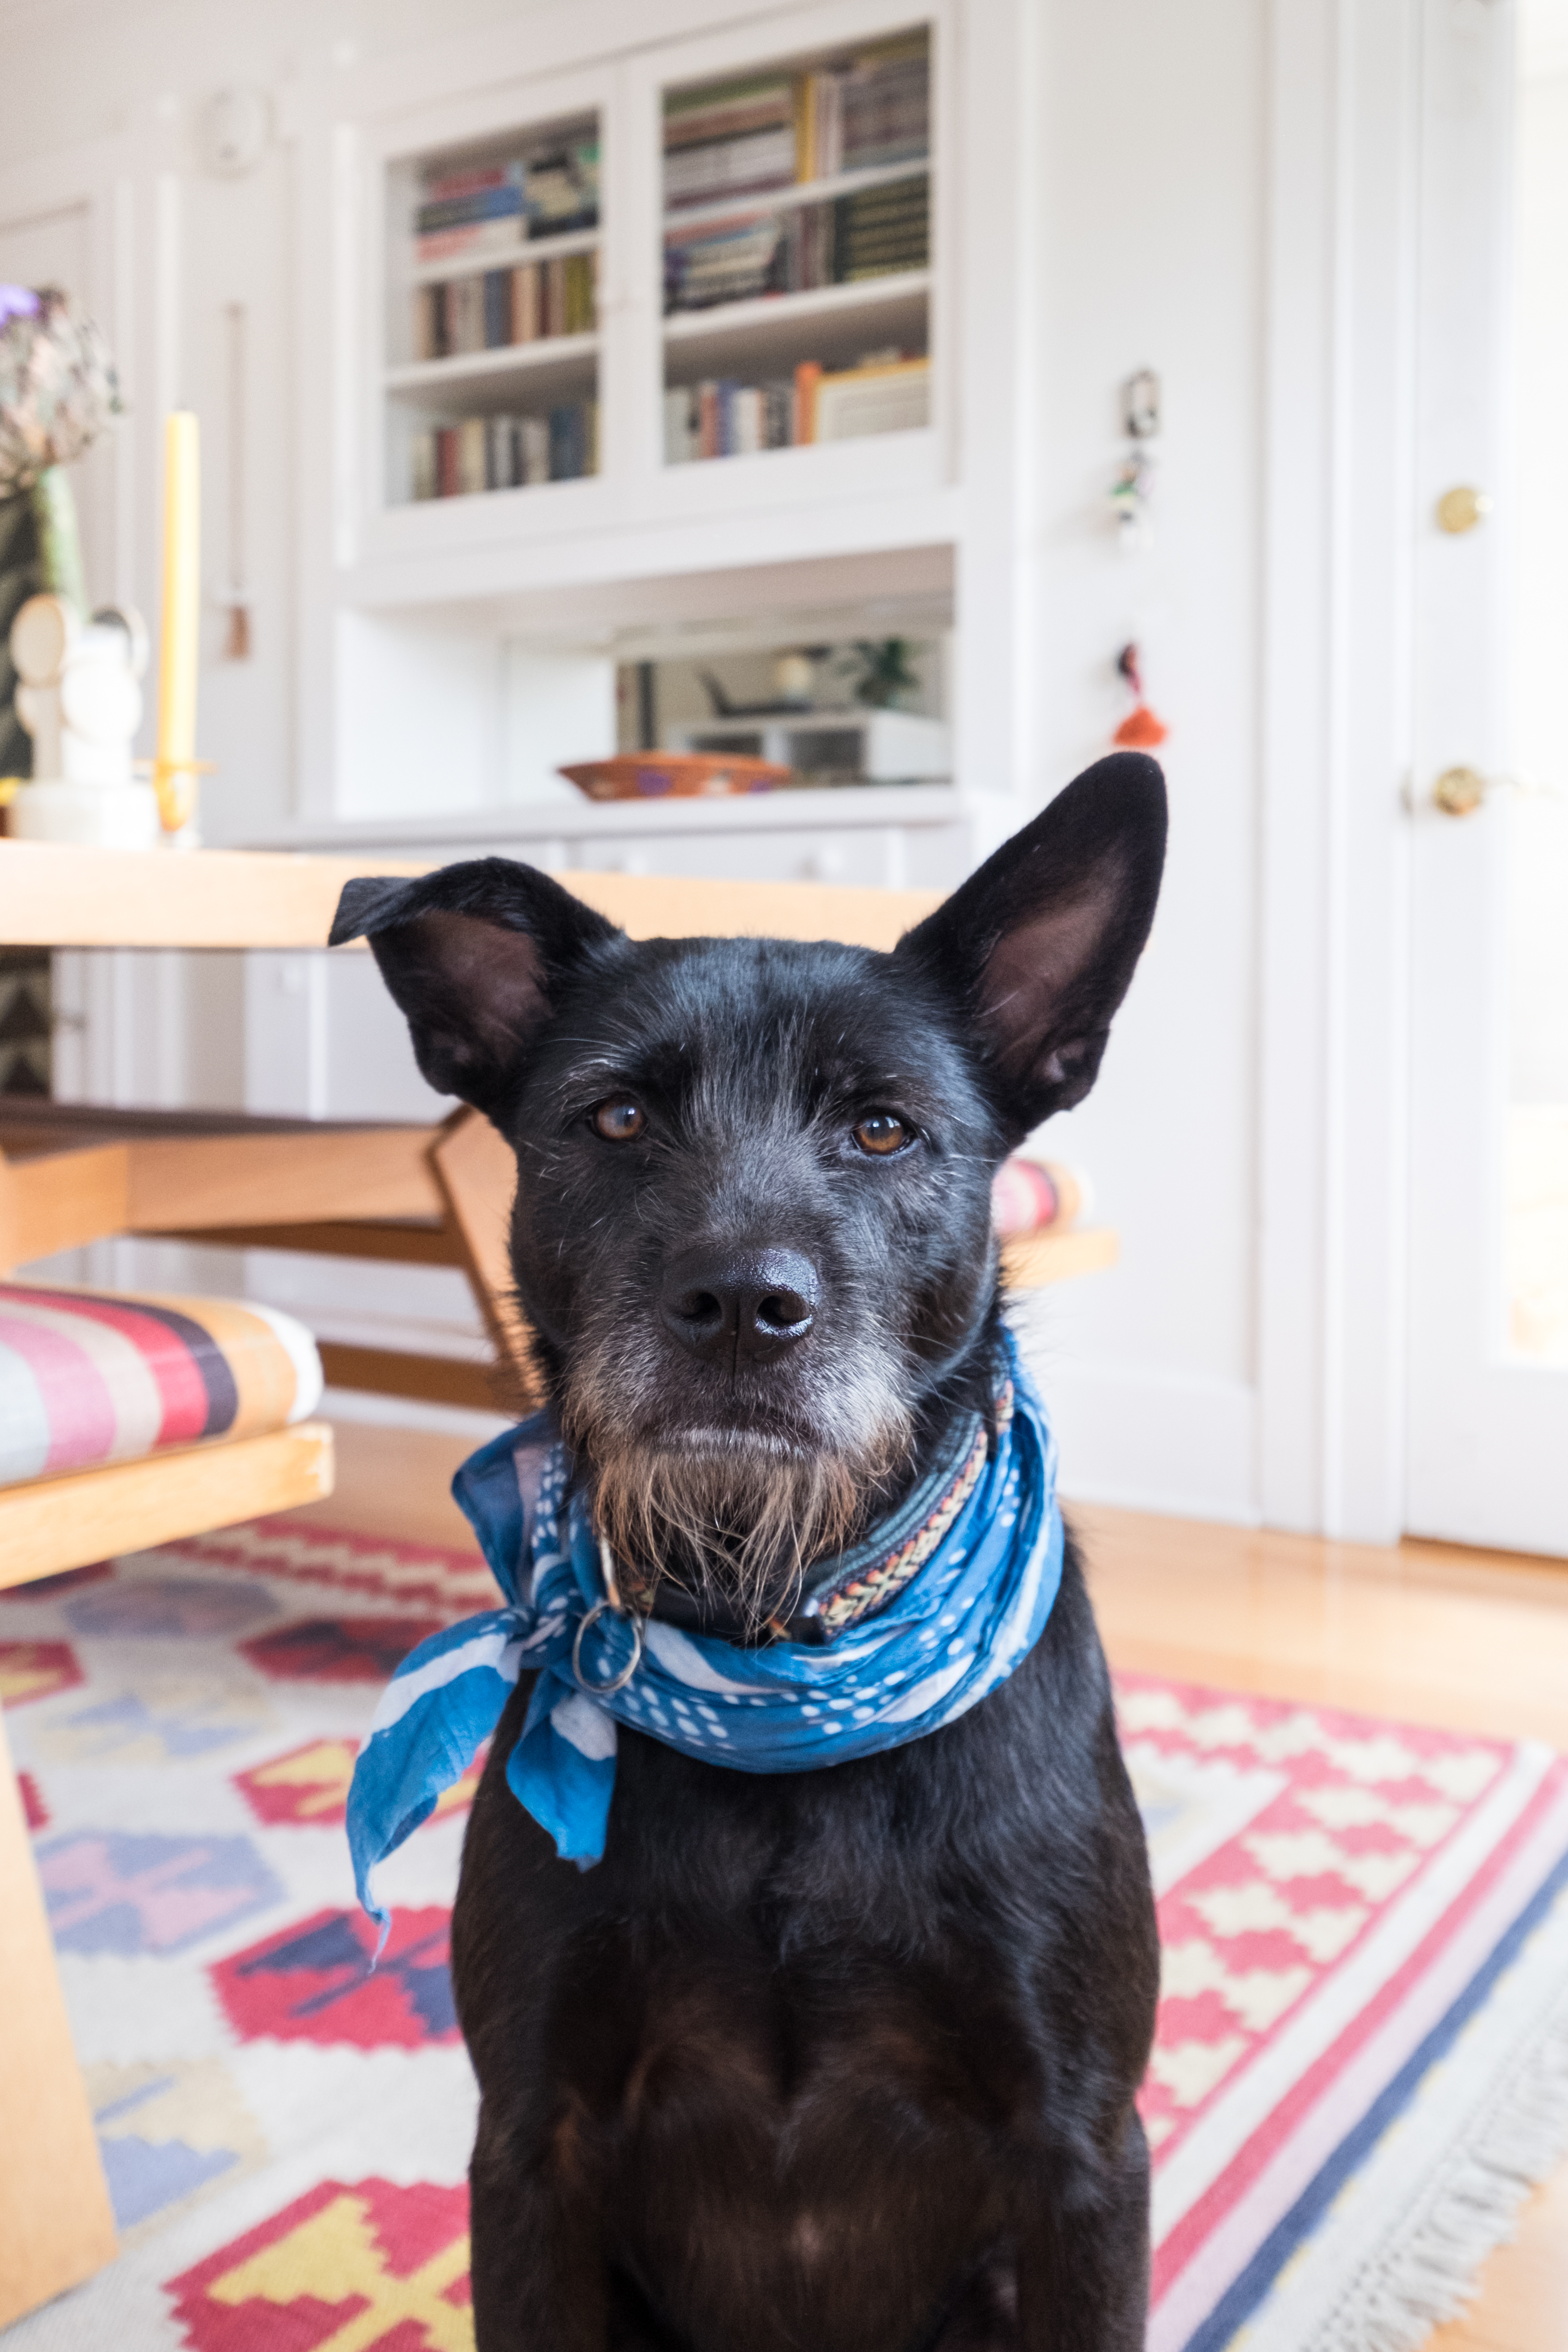 Dog Meal Delivery - Ollie, PetPlate, The Farmer's Dog | Kitchn